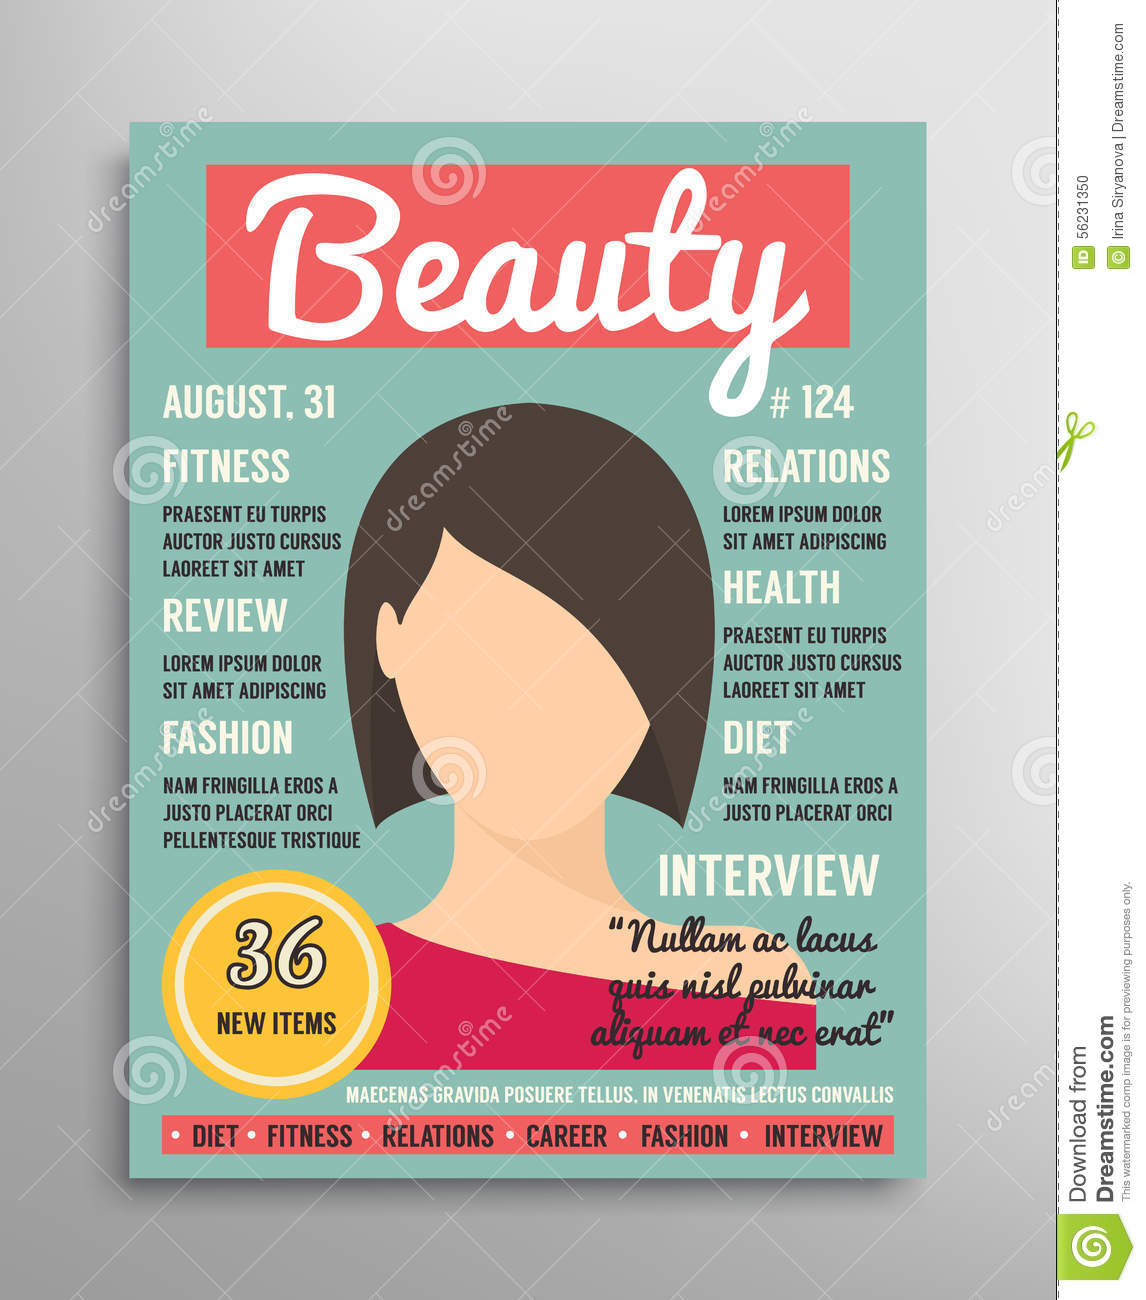 Magazine Cover Template About Beauty, Fashion And Health